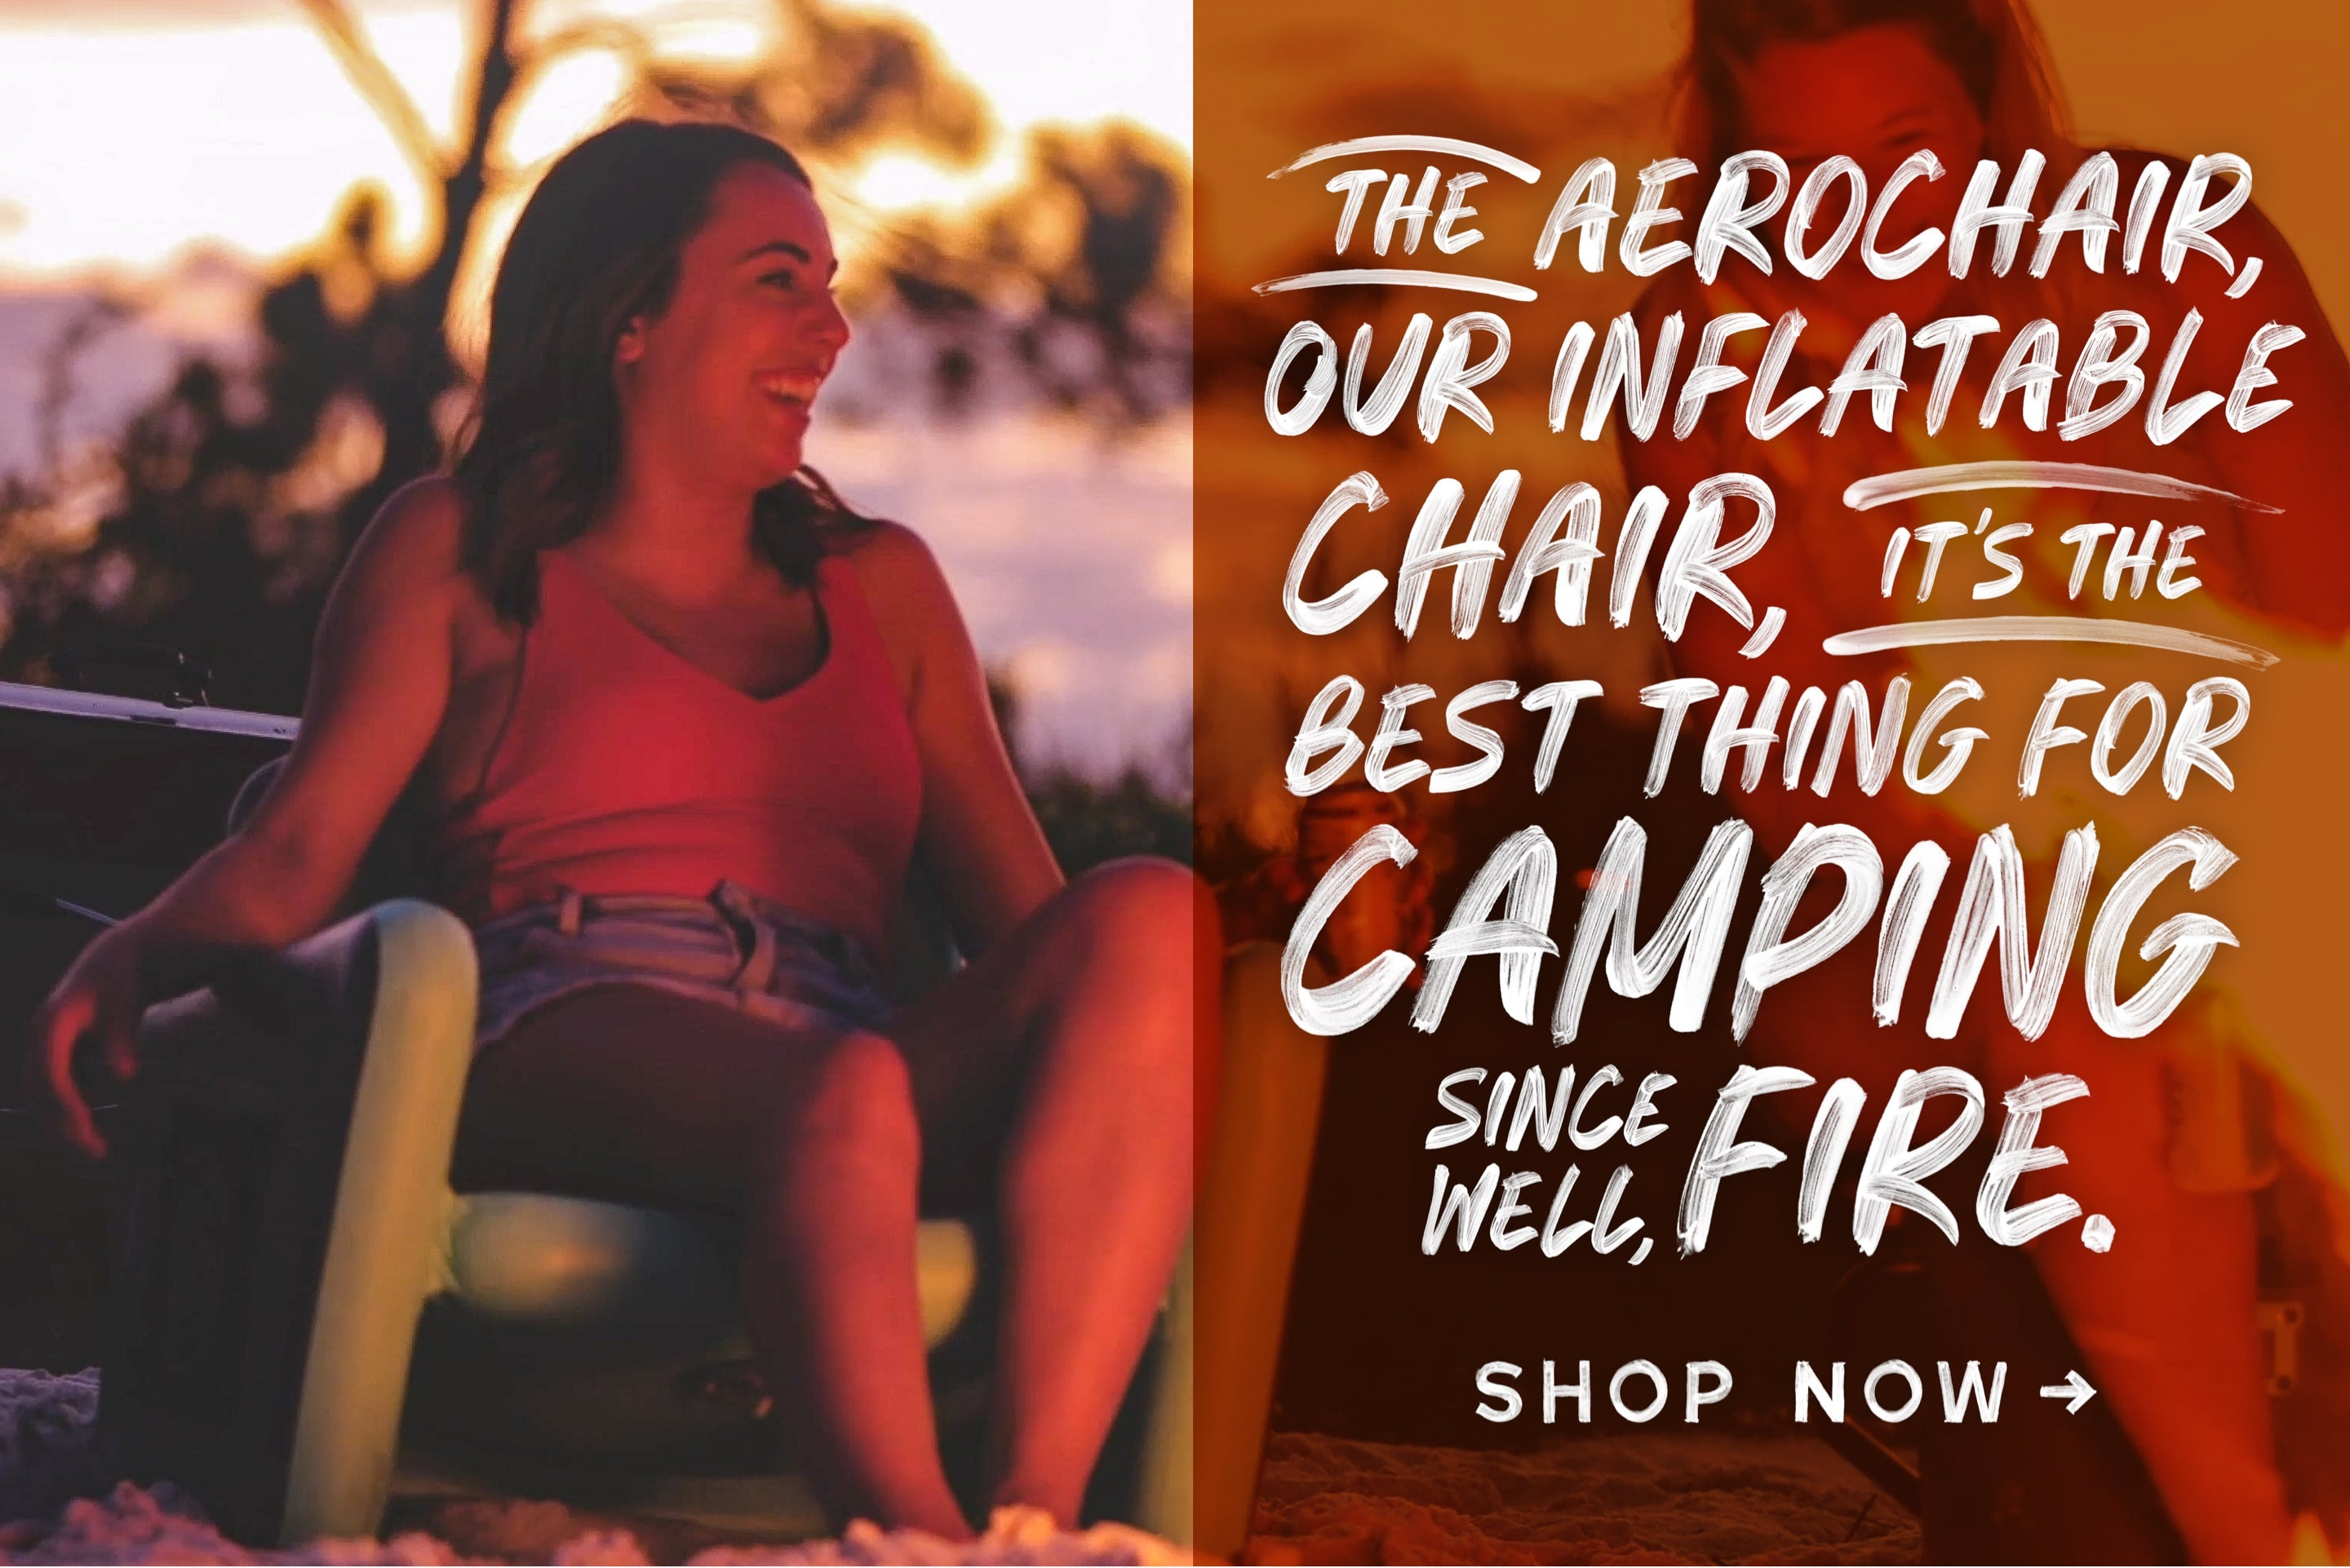 BOTE SUP Camping, highly portable and durable inflatable chair, the AeroChair